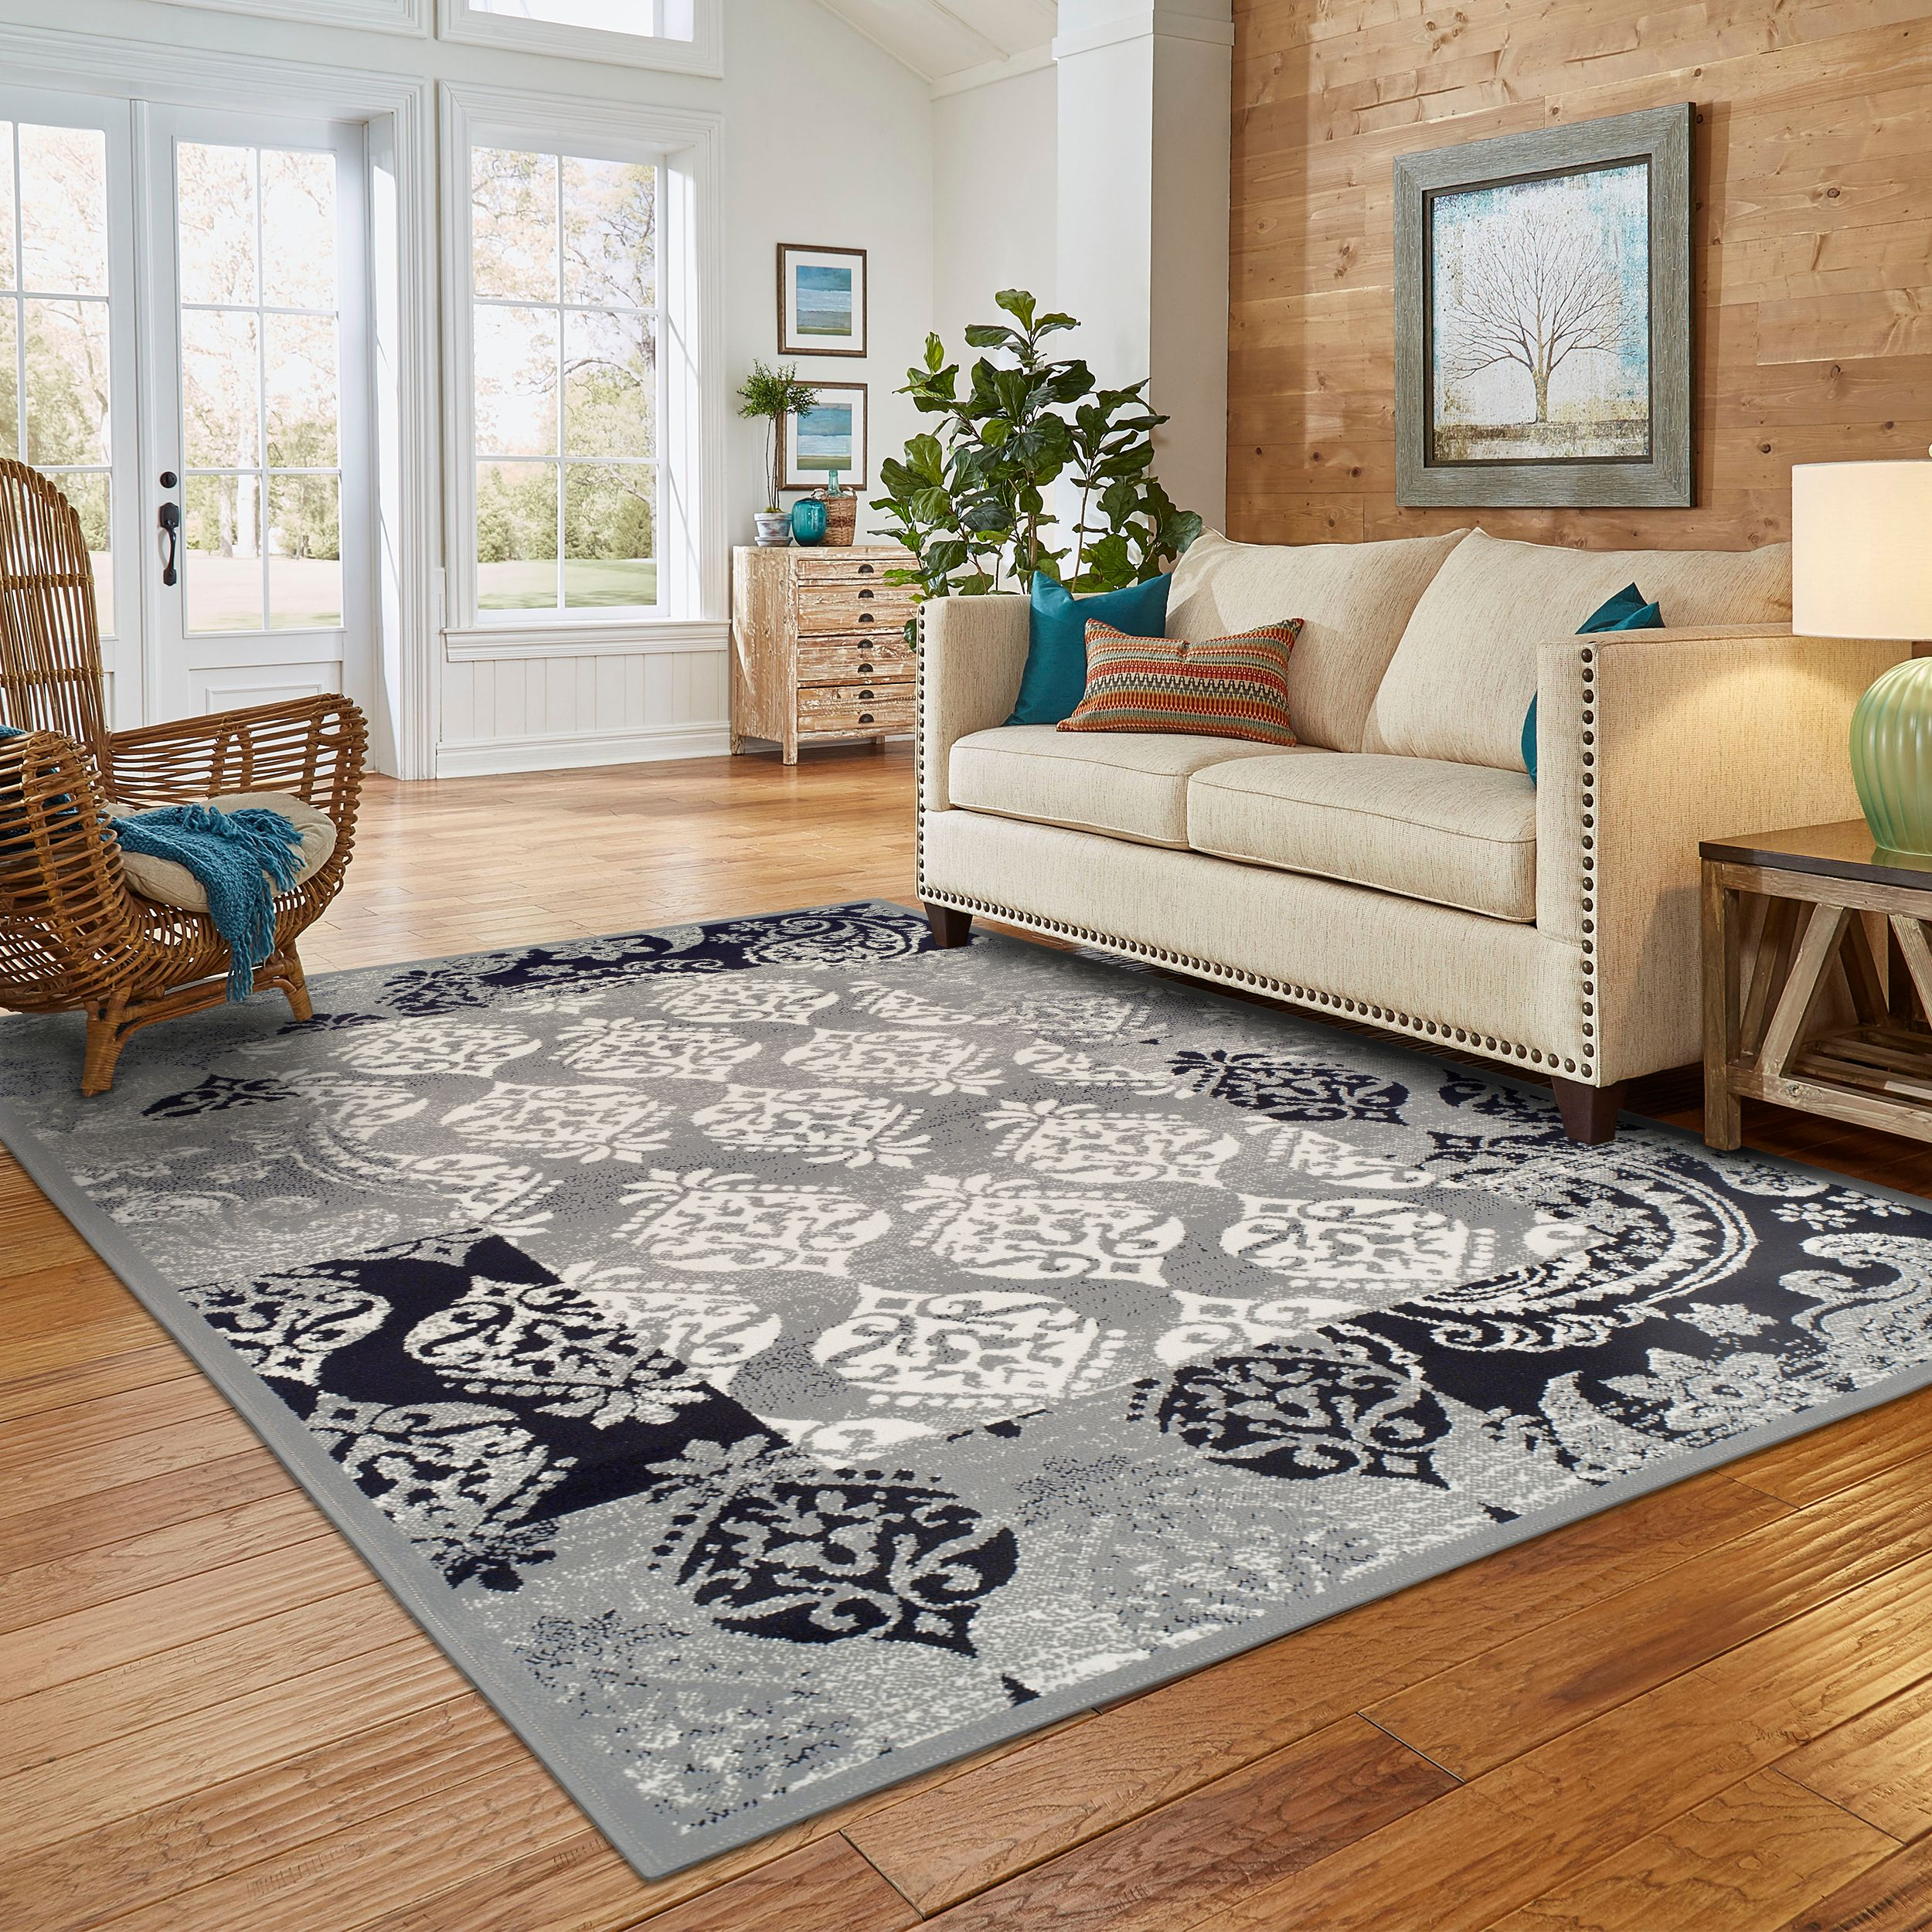 Superior Modern Mystique Collection with 8mm Pile and Jute Backing, Moisture Resistant and Anti-Static Indoor Area Rug